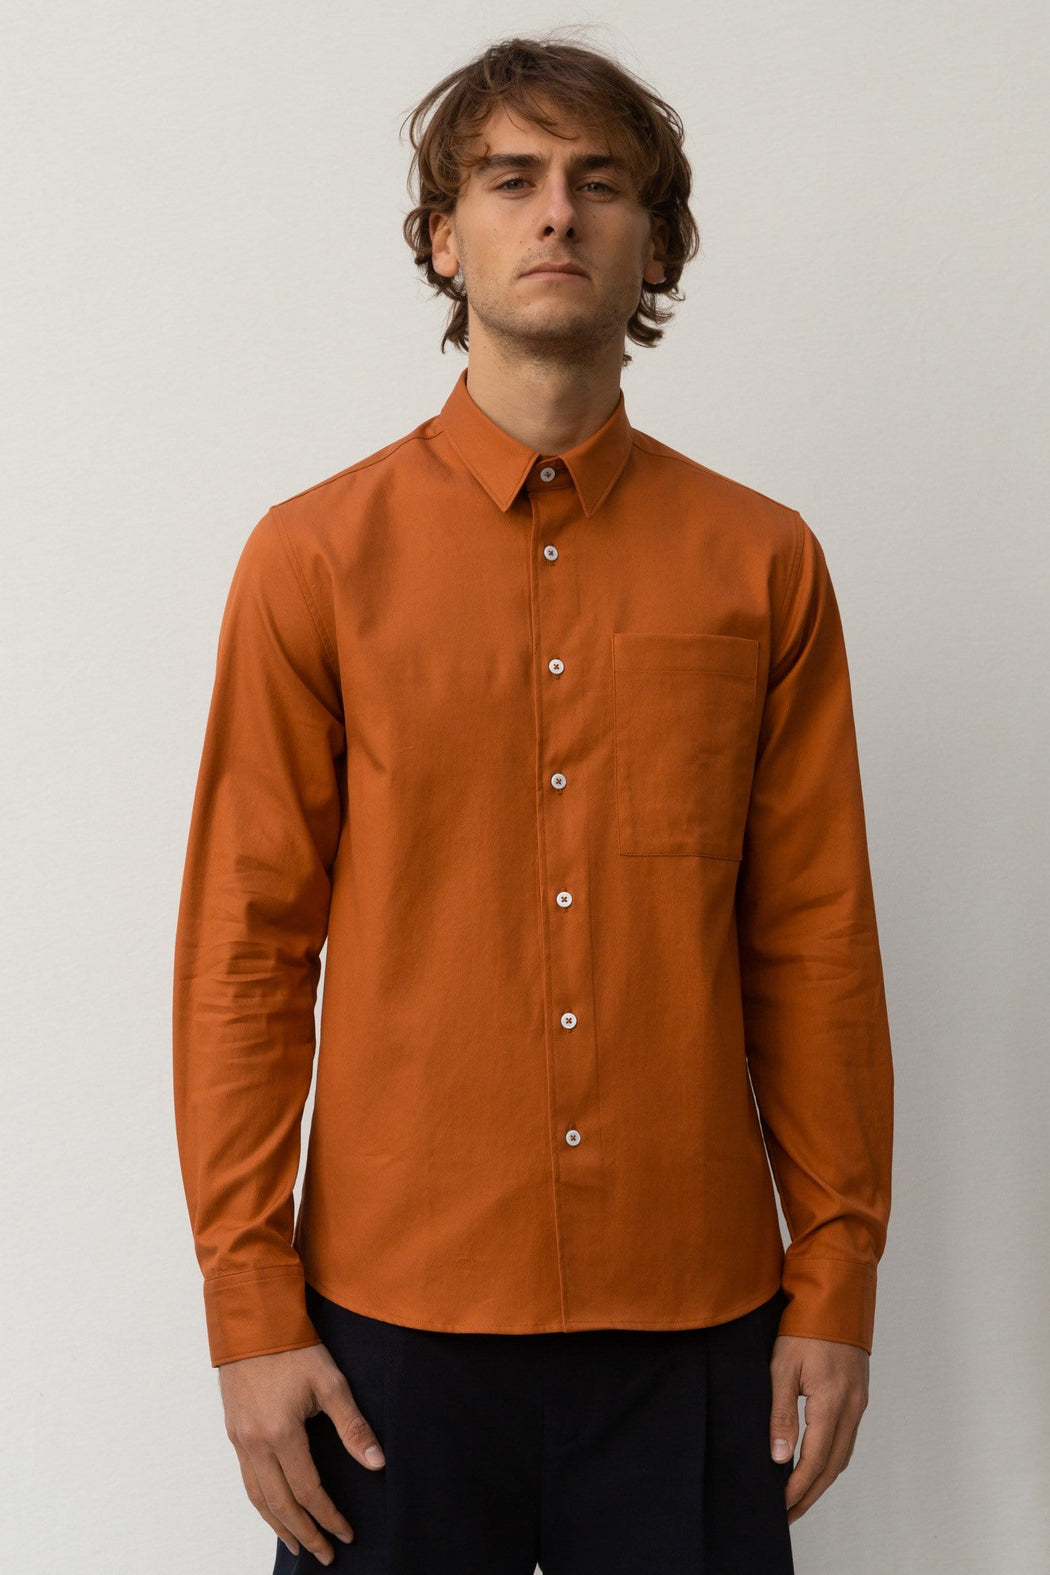 Classic Fit Pocket - Rust